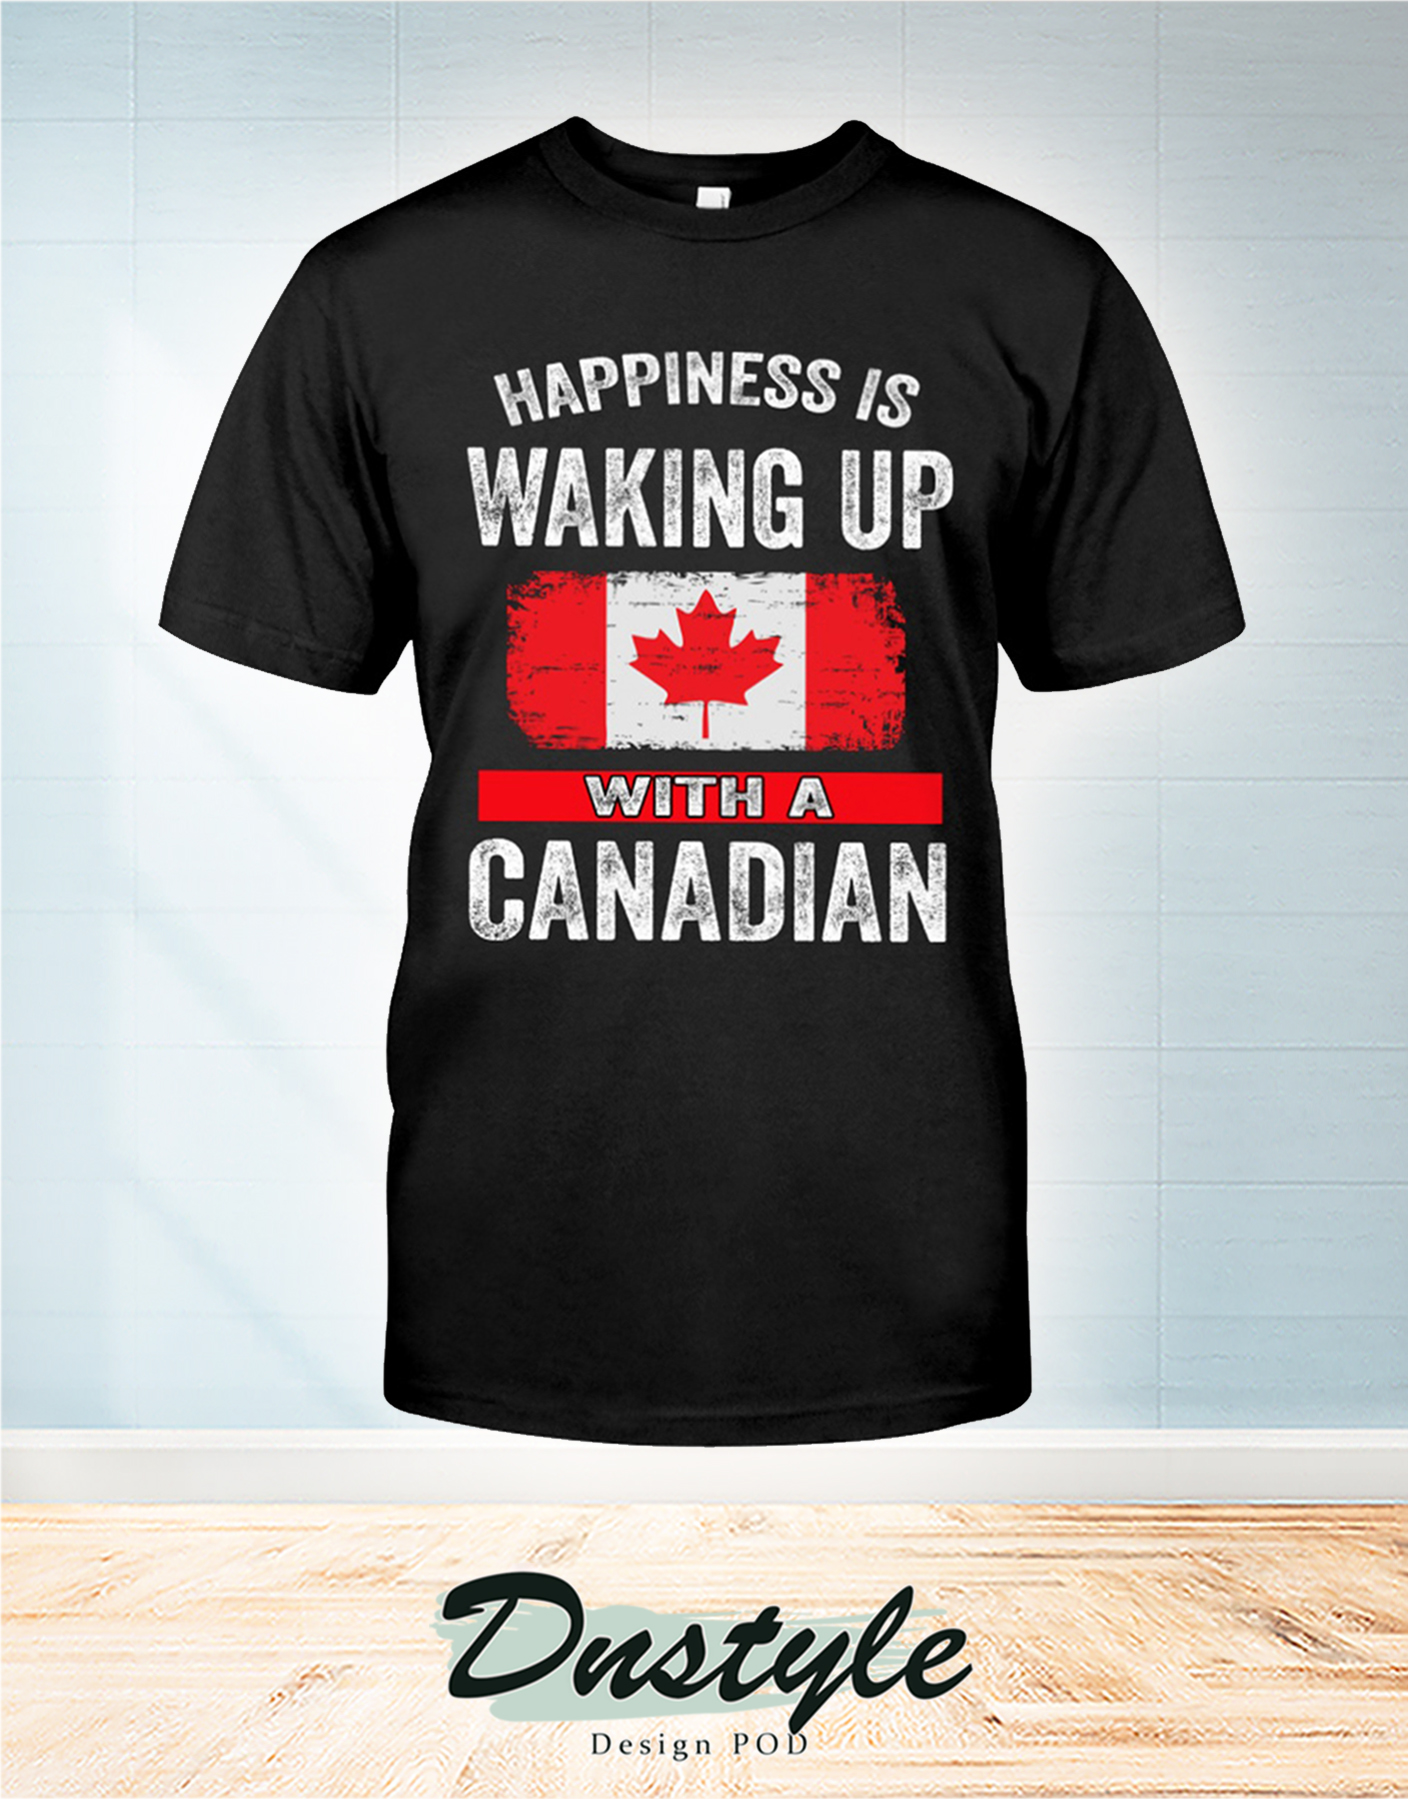 Happiness is waking up with a Canadian t-shirt